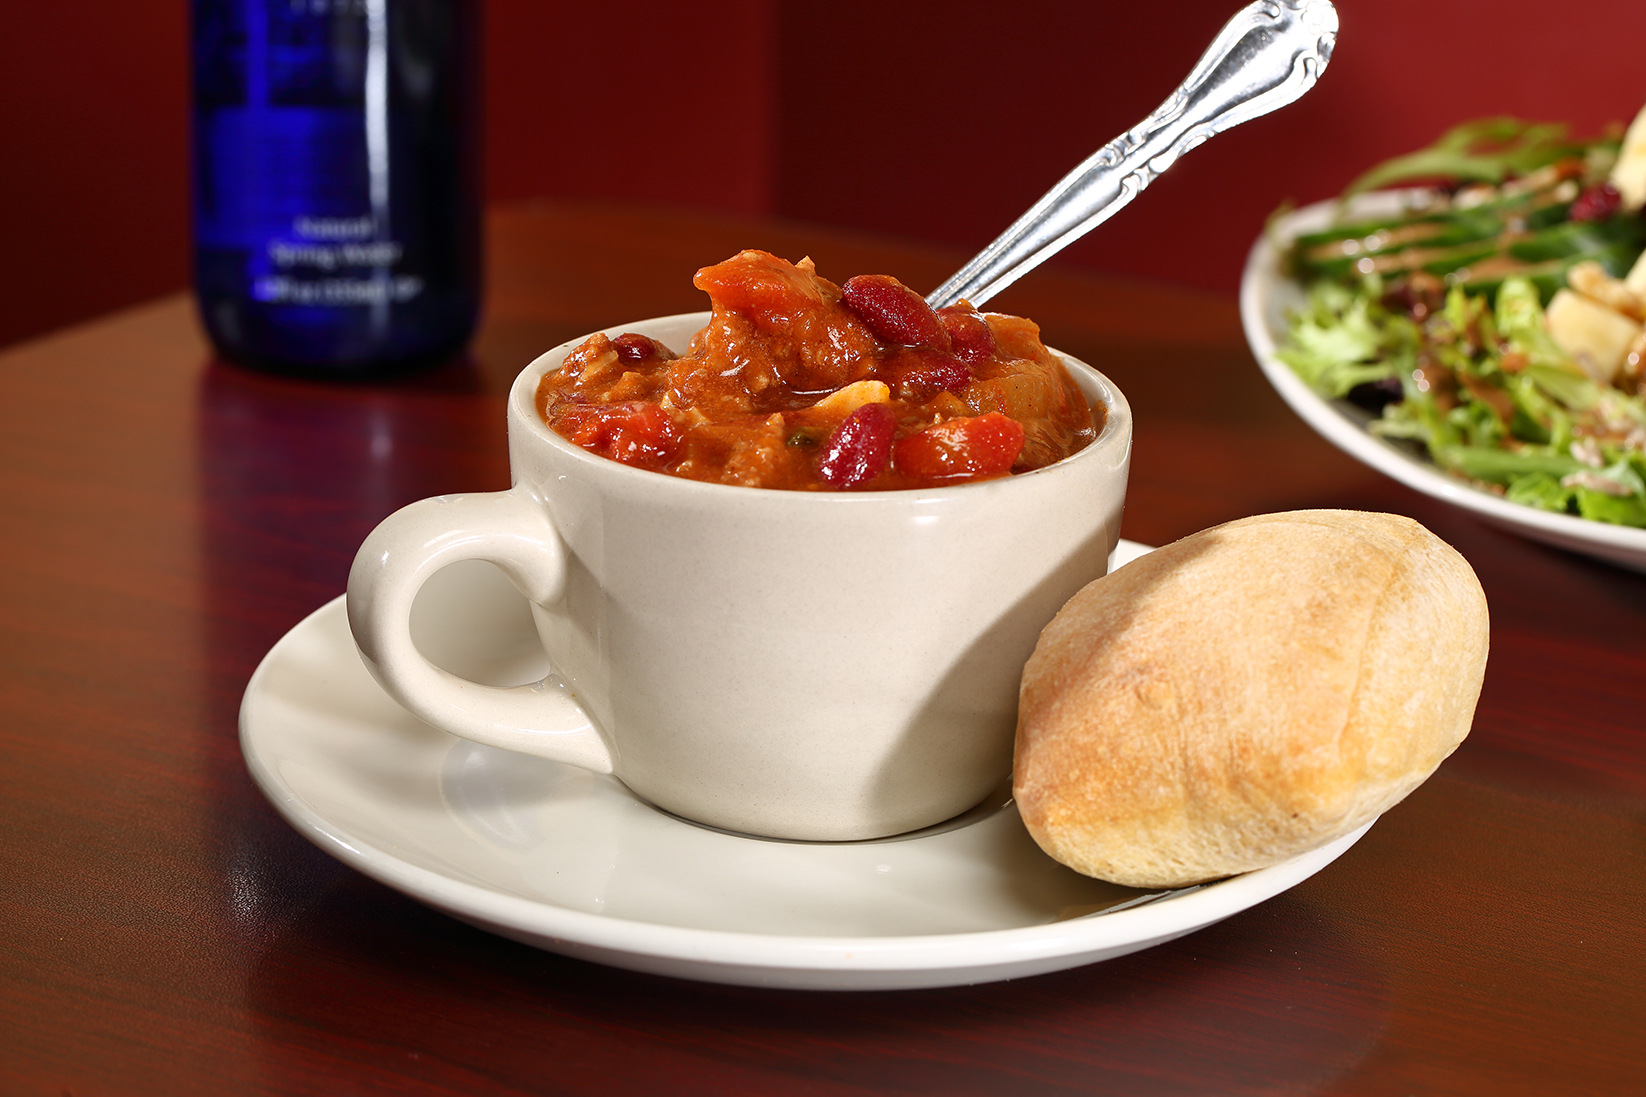 This is a photo of a cup of soup and a small roll on a plate.